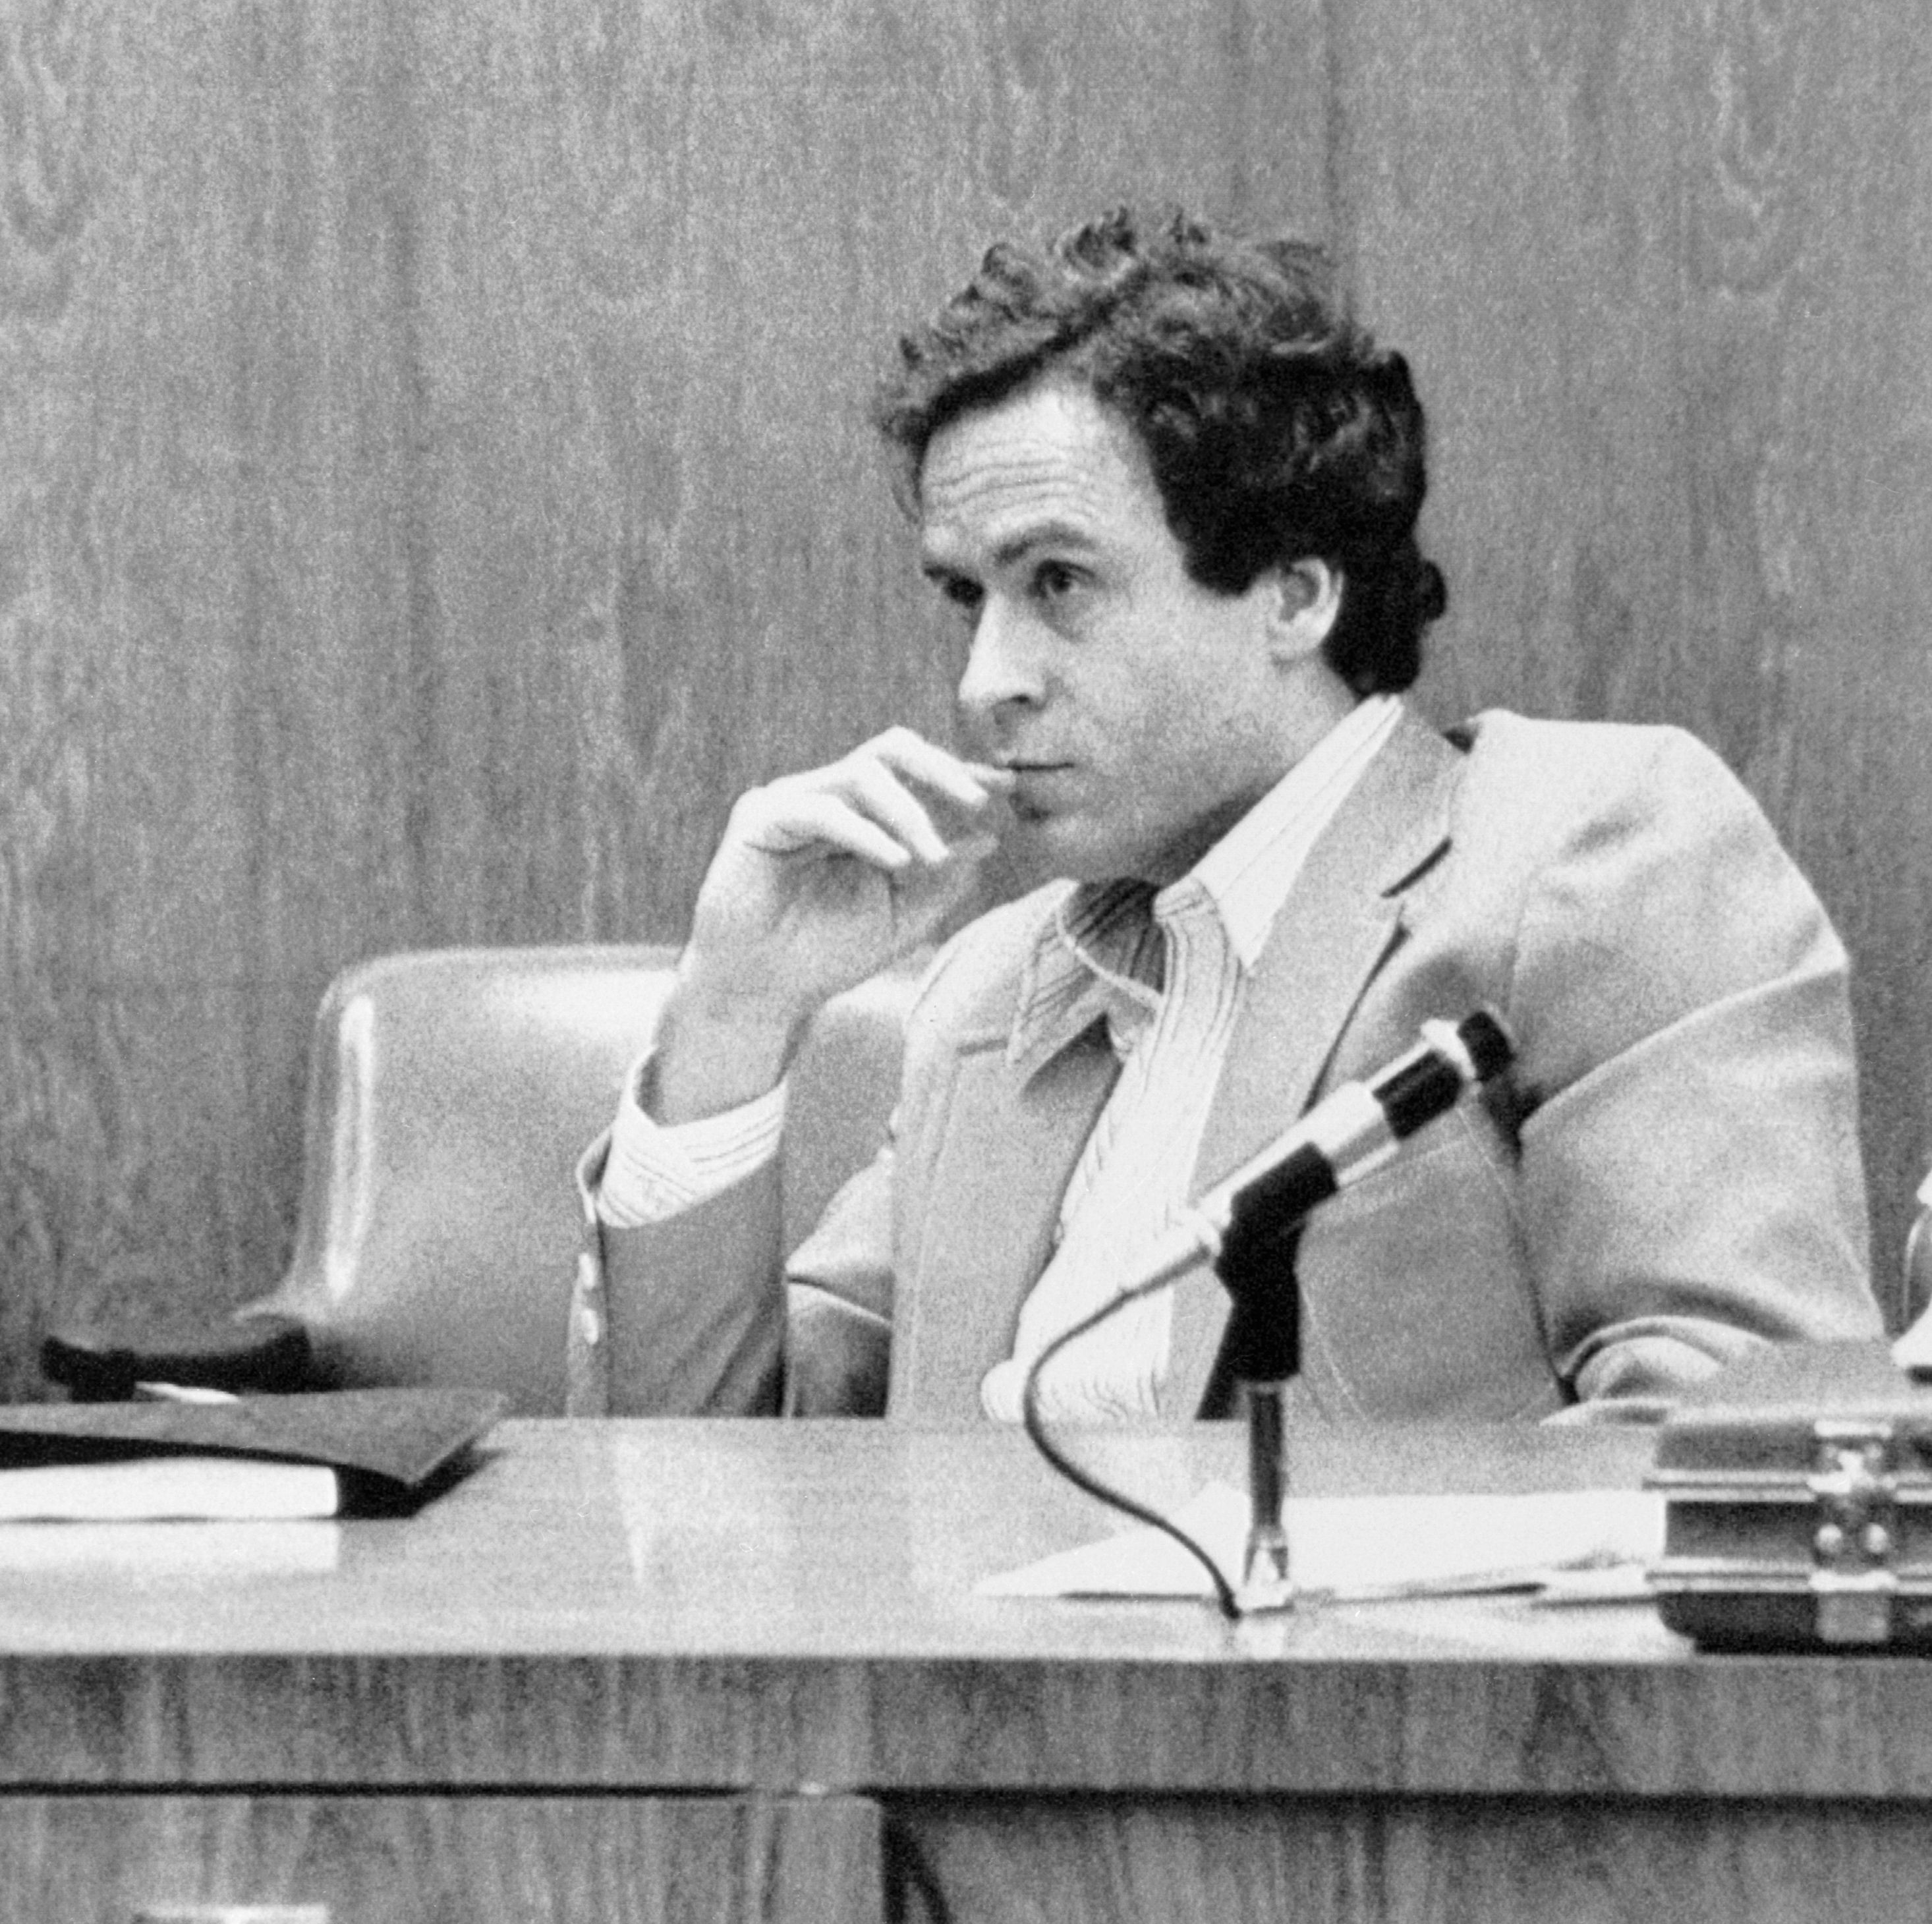 Ted Bundy Nearly Killed This Woman When She Was in College. This Is Her Story.